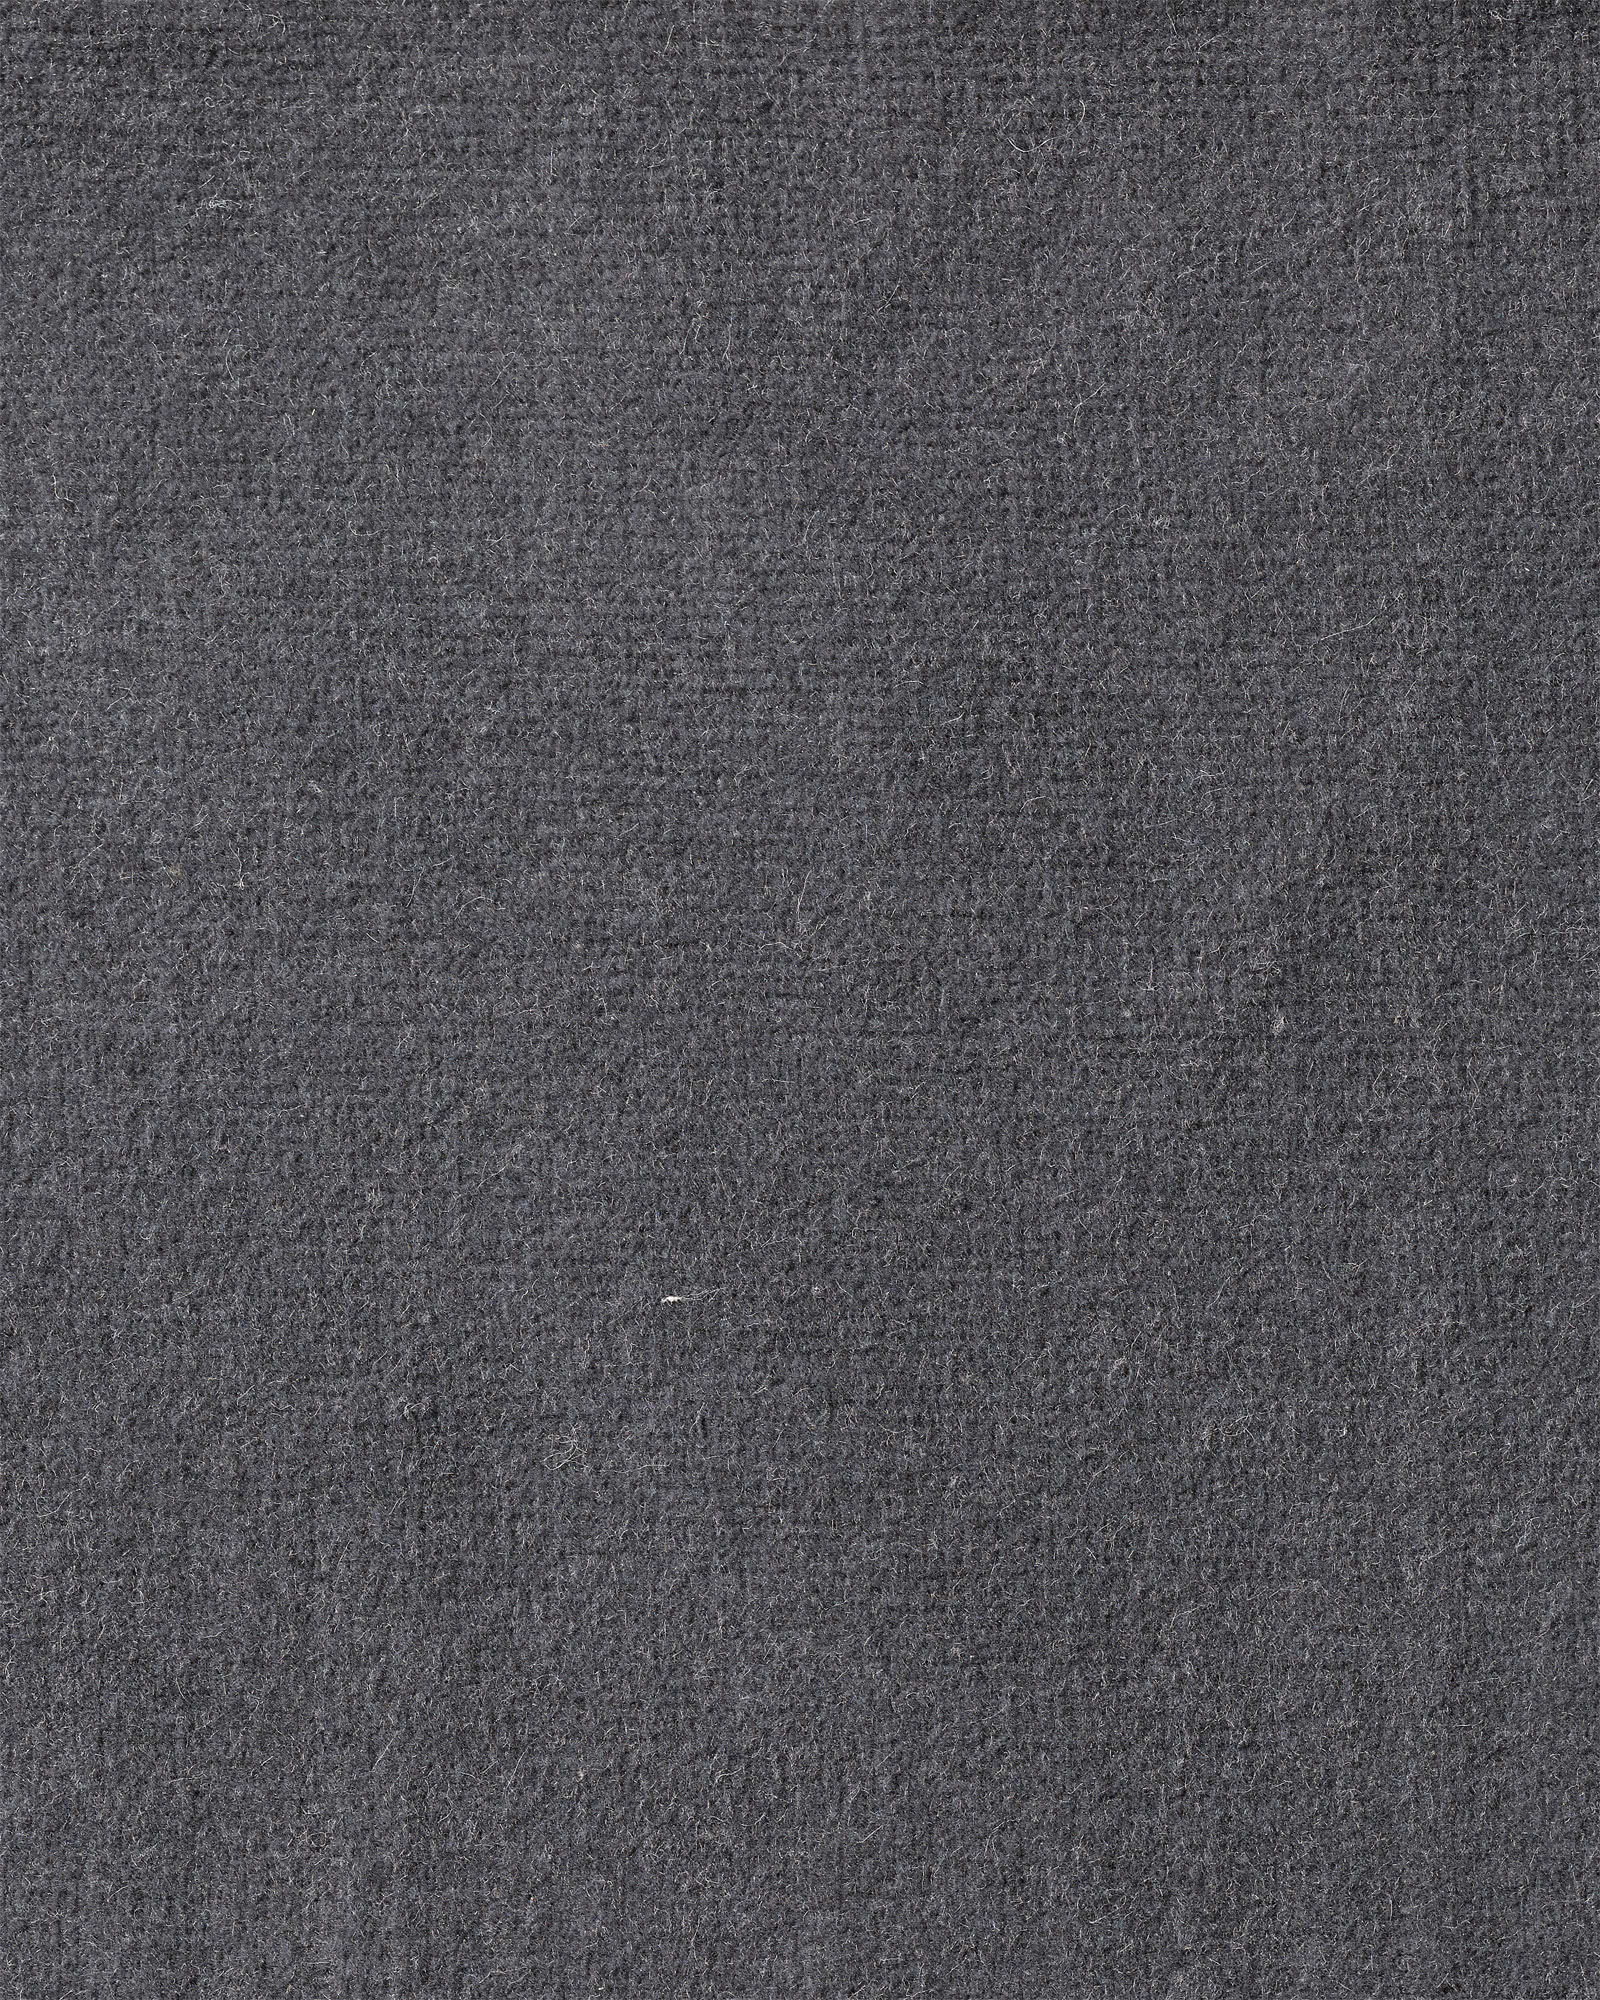 Fabric by the Yard – Cotton Velvet Fabric, Cement